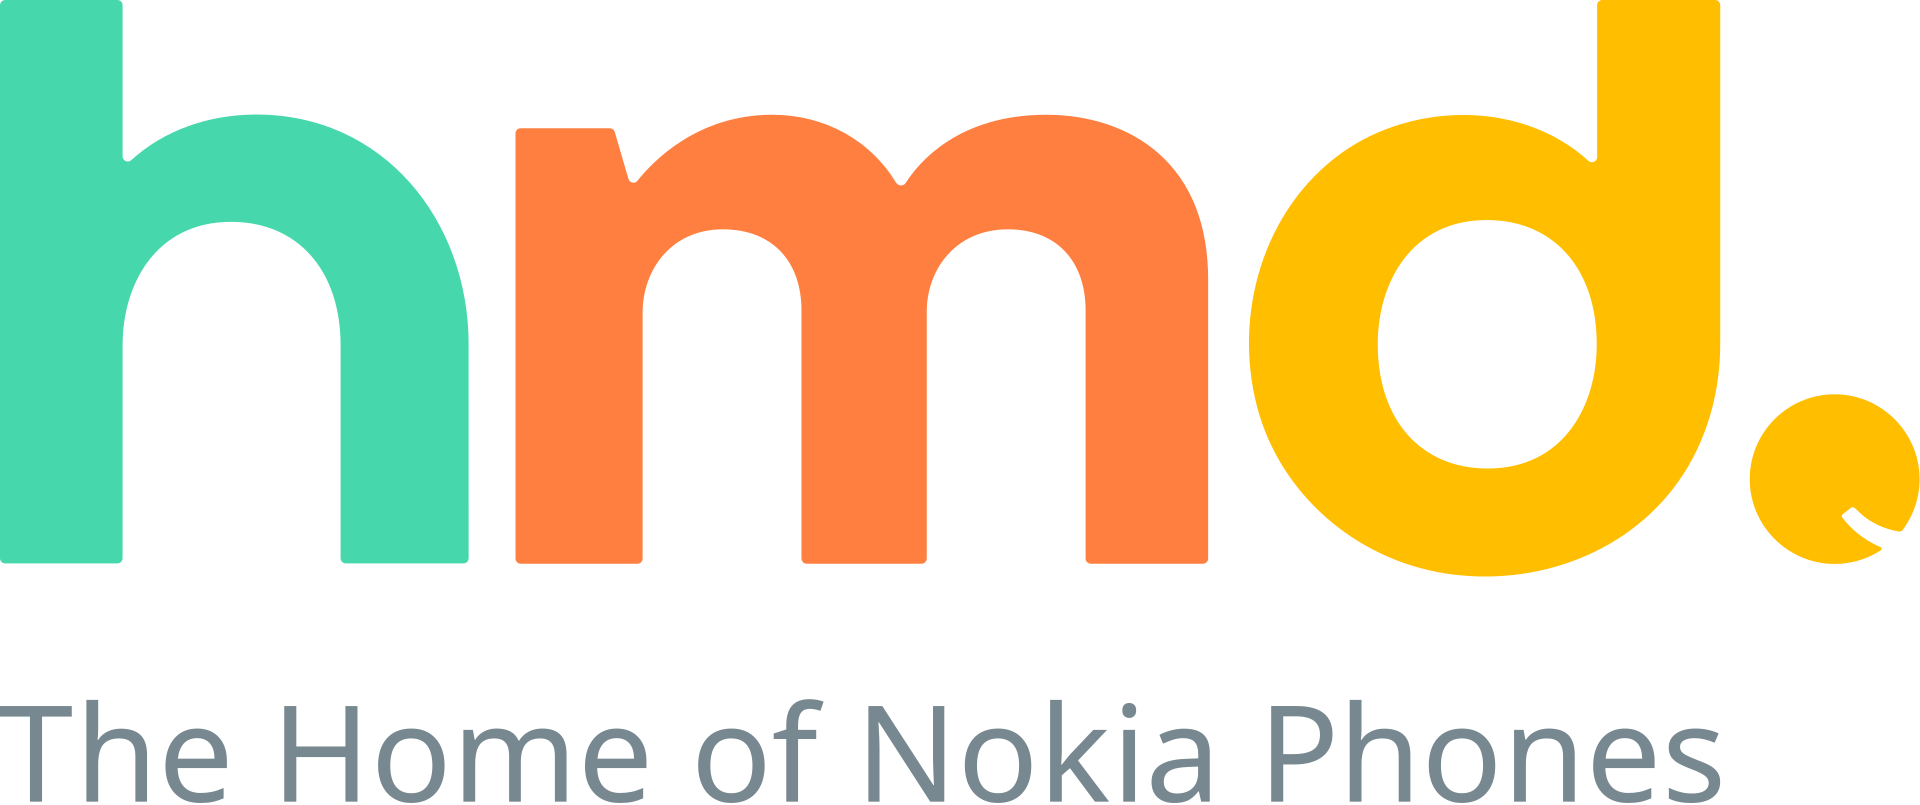 HMD Global Is The Main Producer Of Nokia Mobiles Across The World